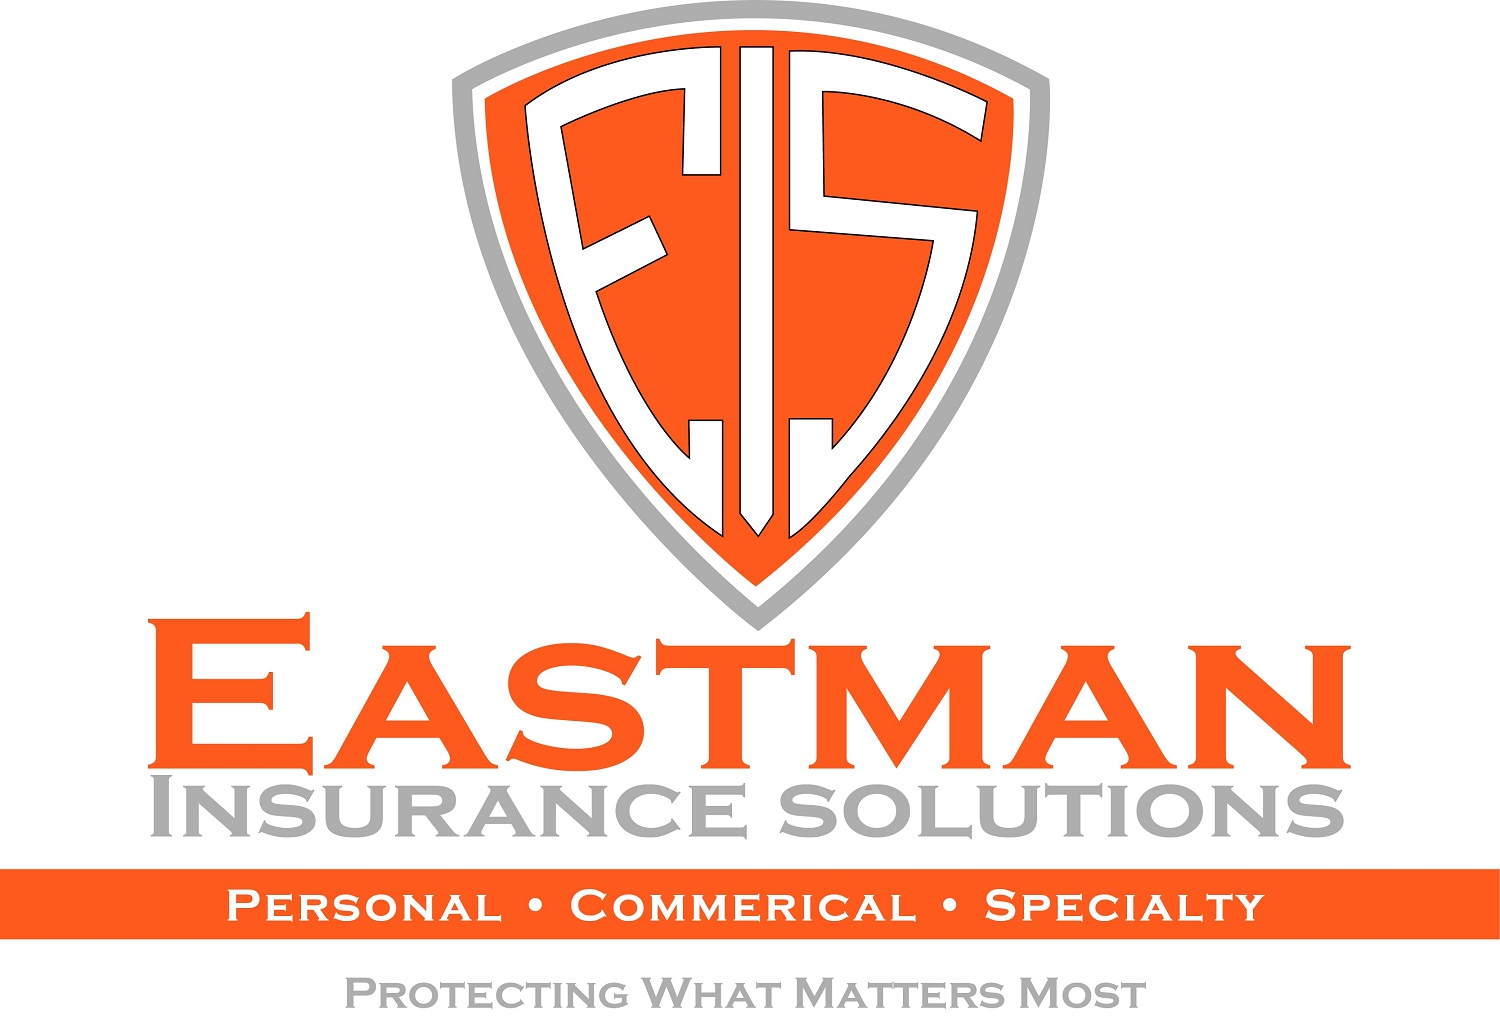 Eastman Insurance Solutions